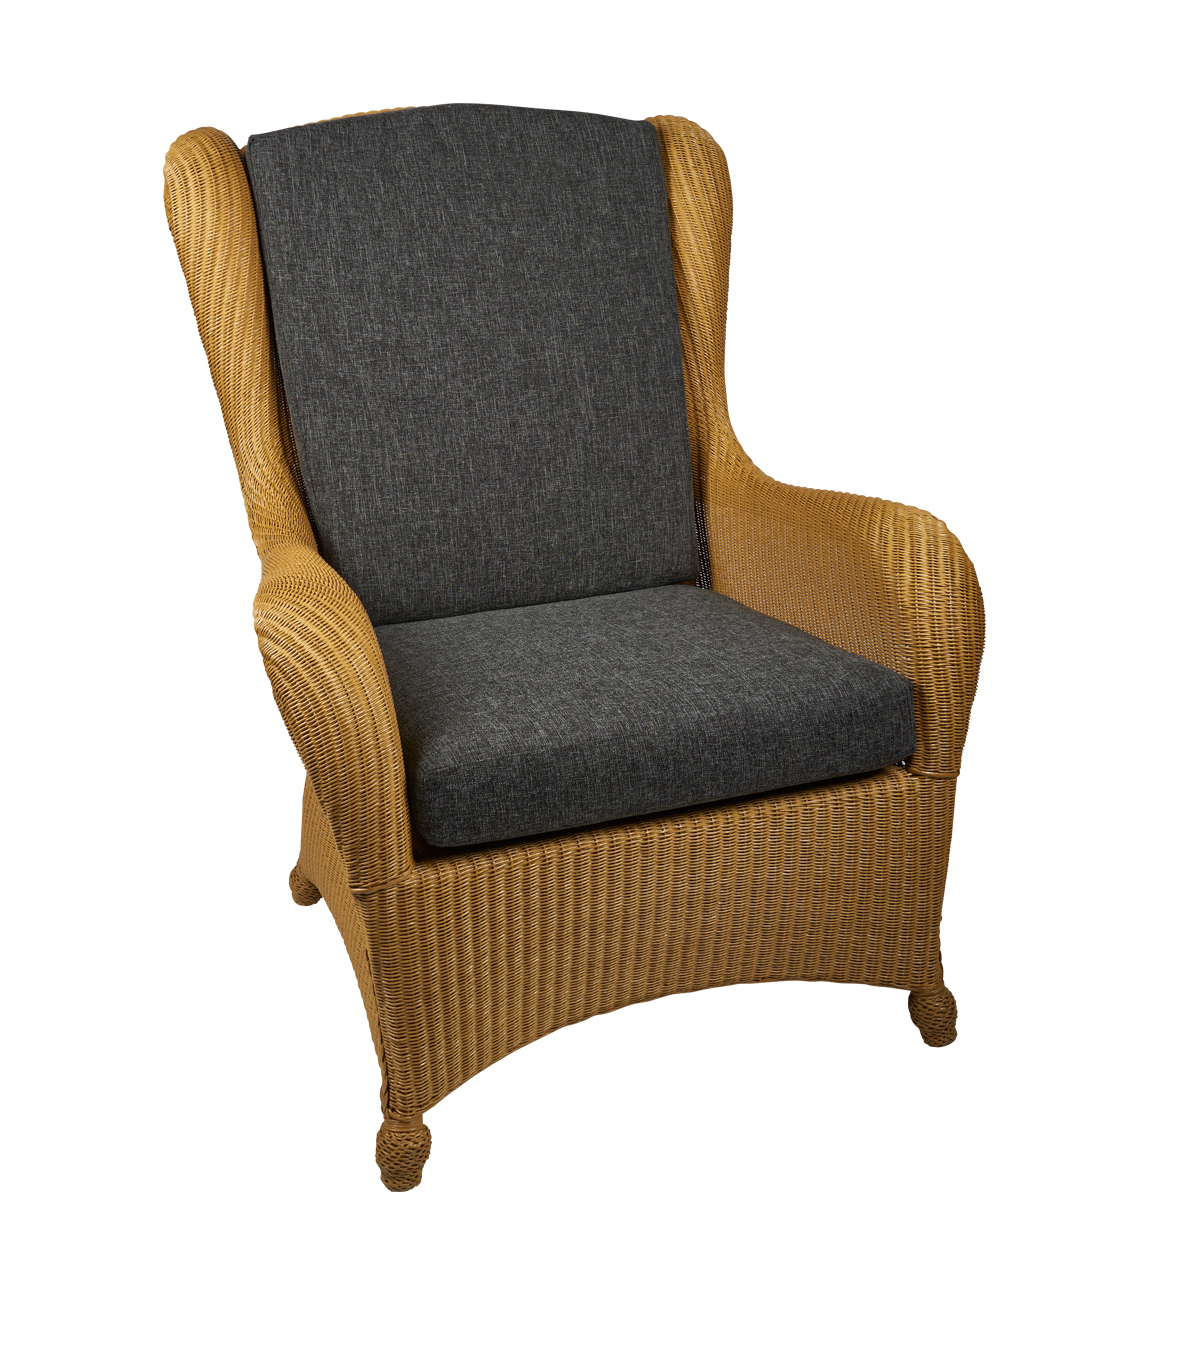 Lloyd loom King Chair Naturel